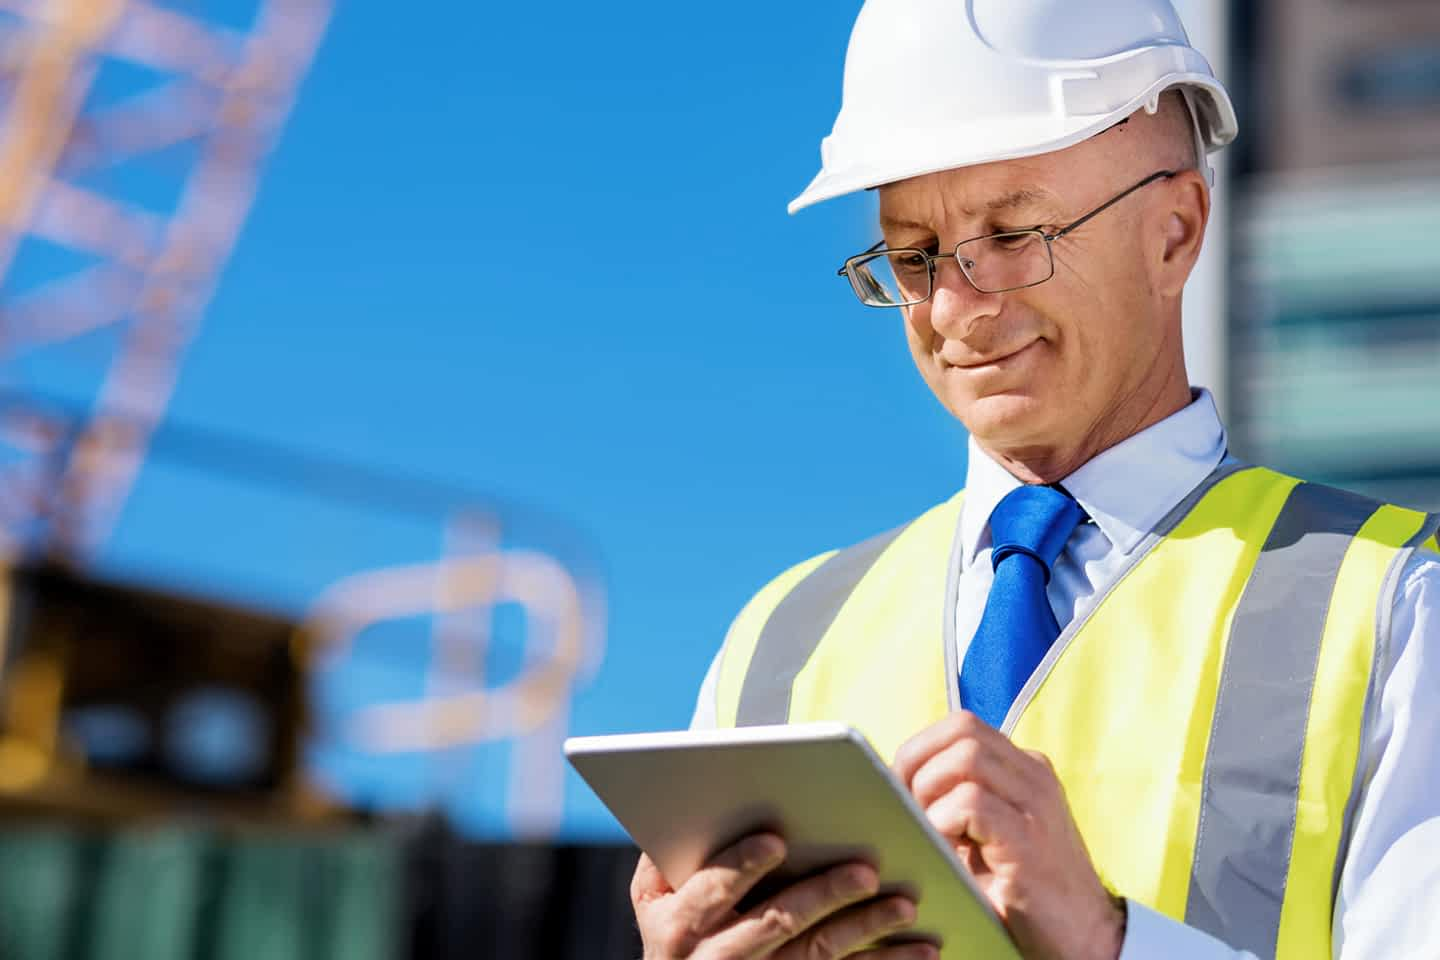 Construction mobile forms